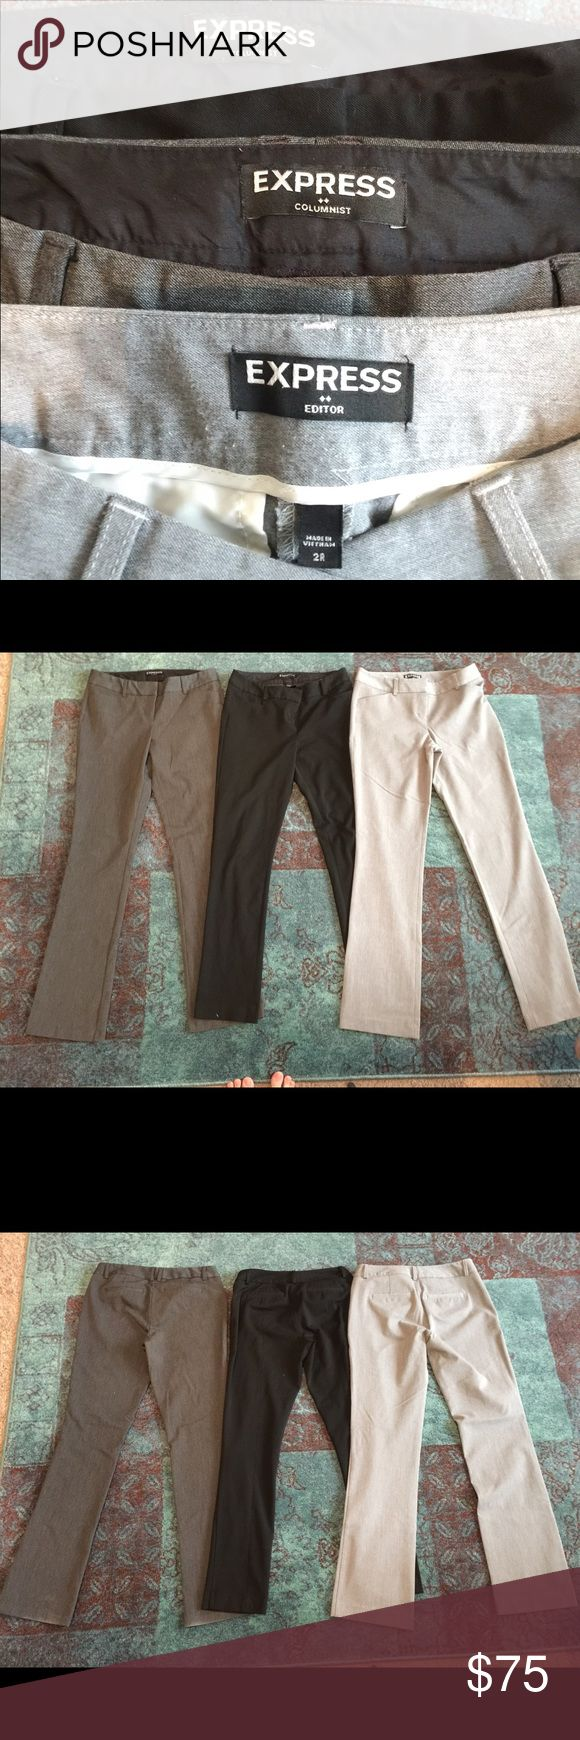 3 Pairs of Express Editor Pants Slightly worn Express pants size 2R. Some wear on the bottom of pant legs on dark gray pair. (Shown in picture) All low rise. Black pair is slim leg, both gray pairs are boot cut. Selling all three together. Light gray pair looks lighter in pictures. Last picture is better reference. Express Pants